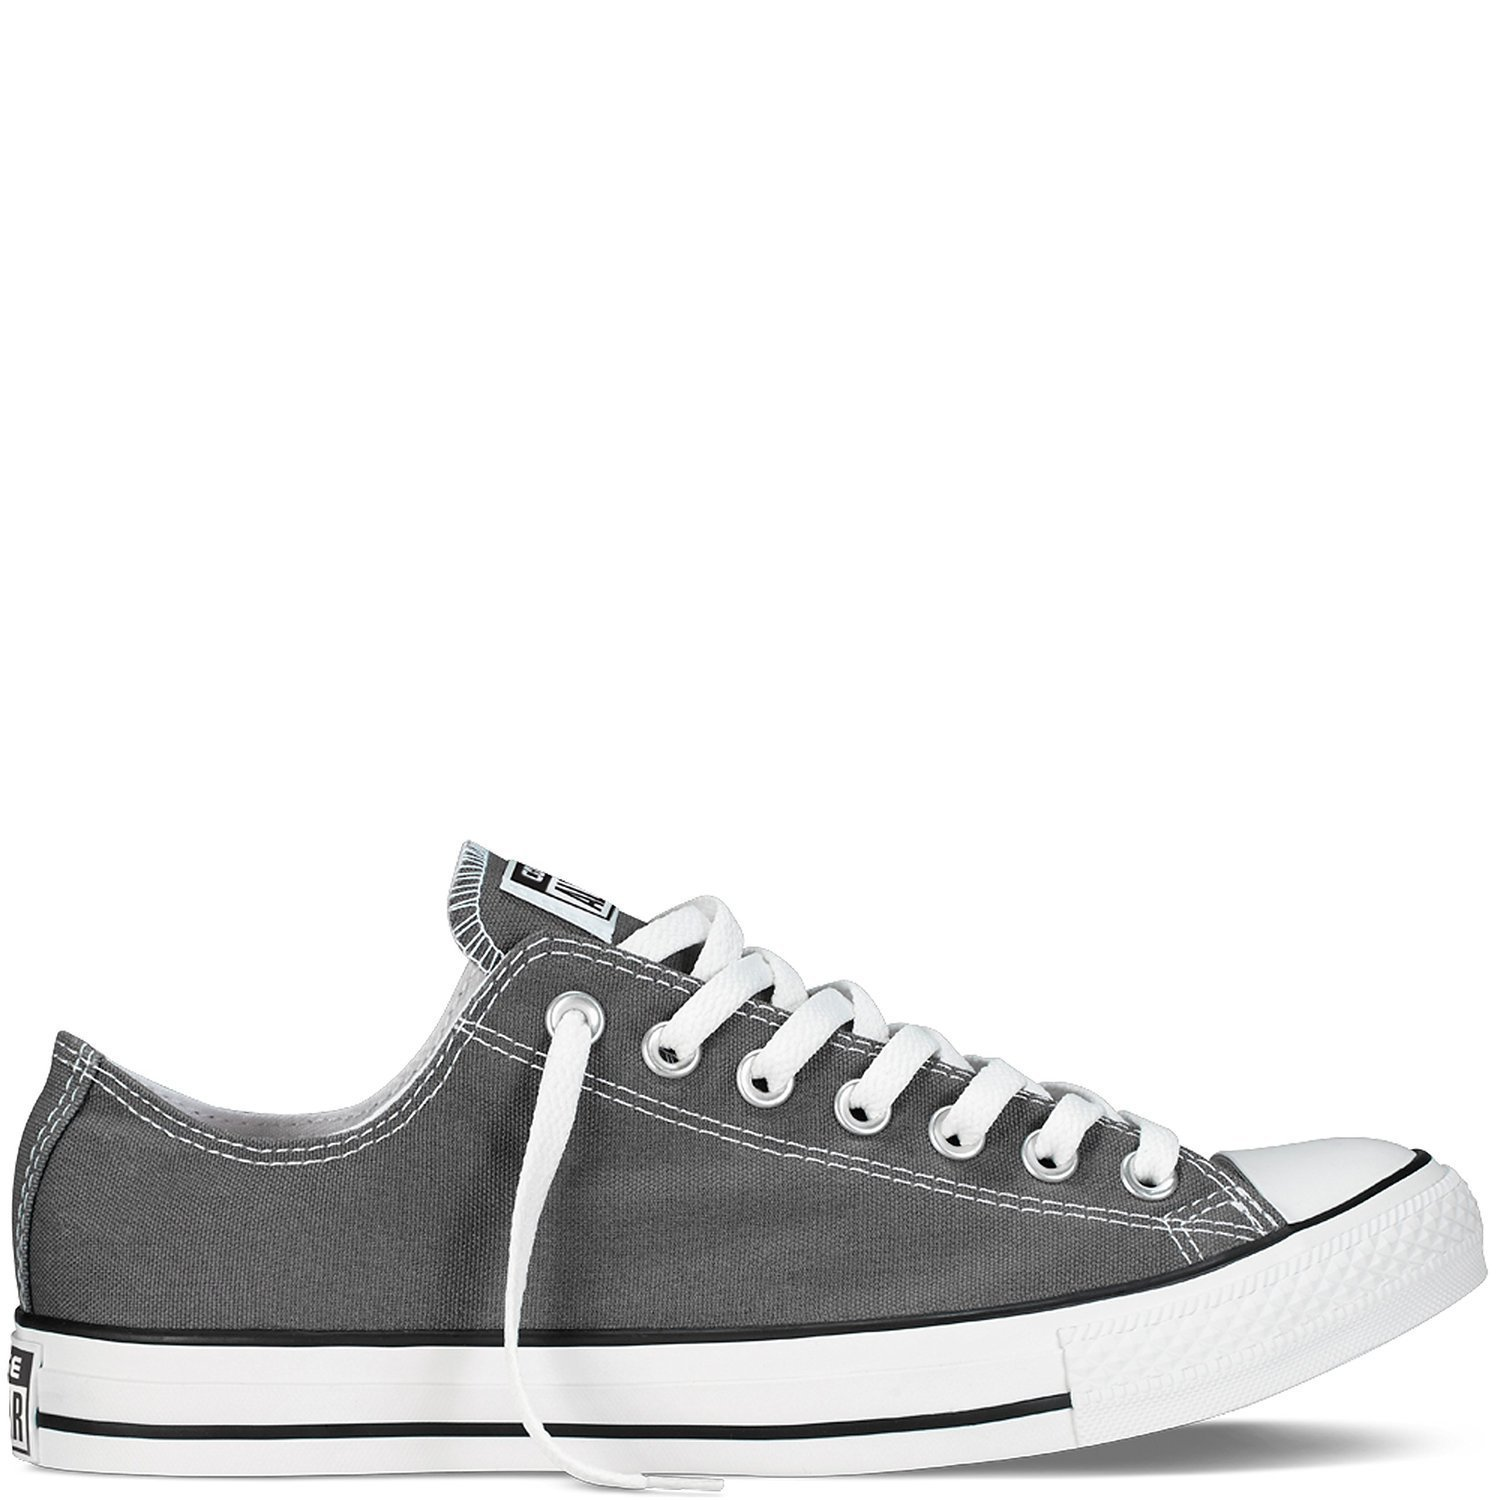 Converse Chuck Taylor All Star Slip Sneaker Gray 1X228, Size 4 Mens, 6 Womens by Converse (Image #1)